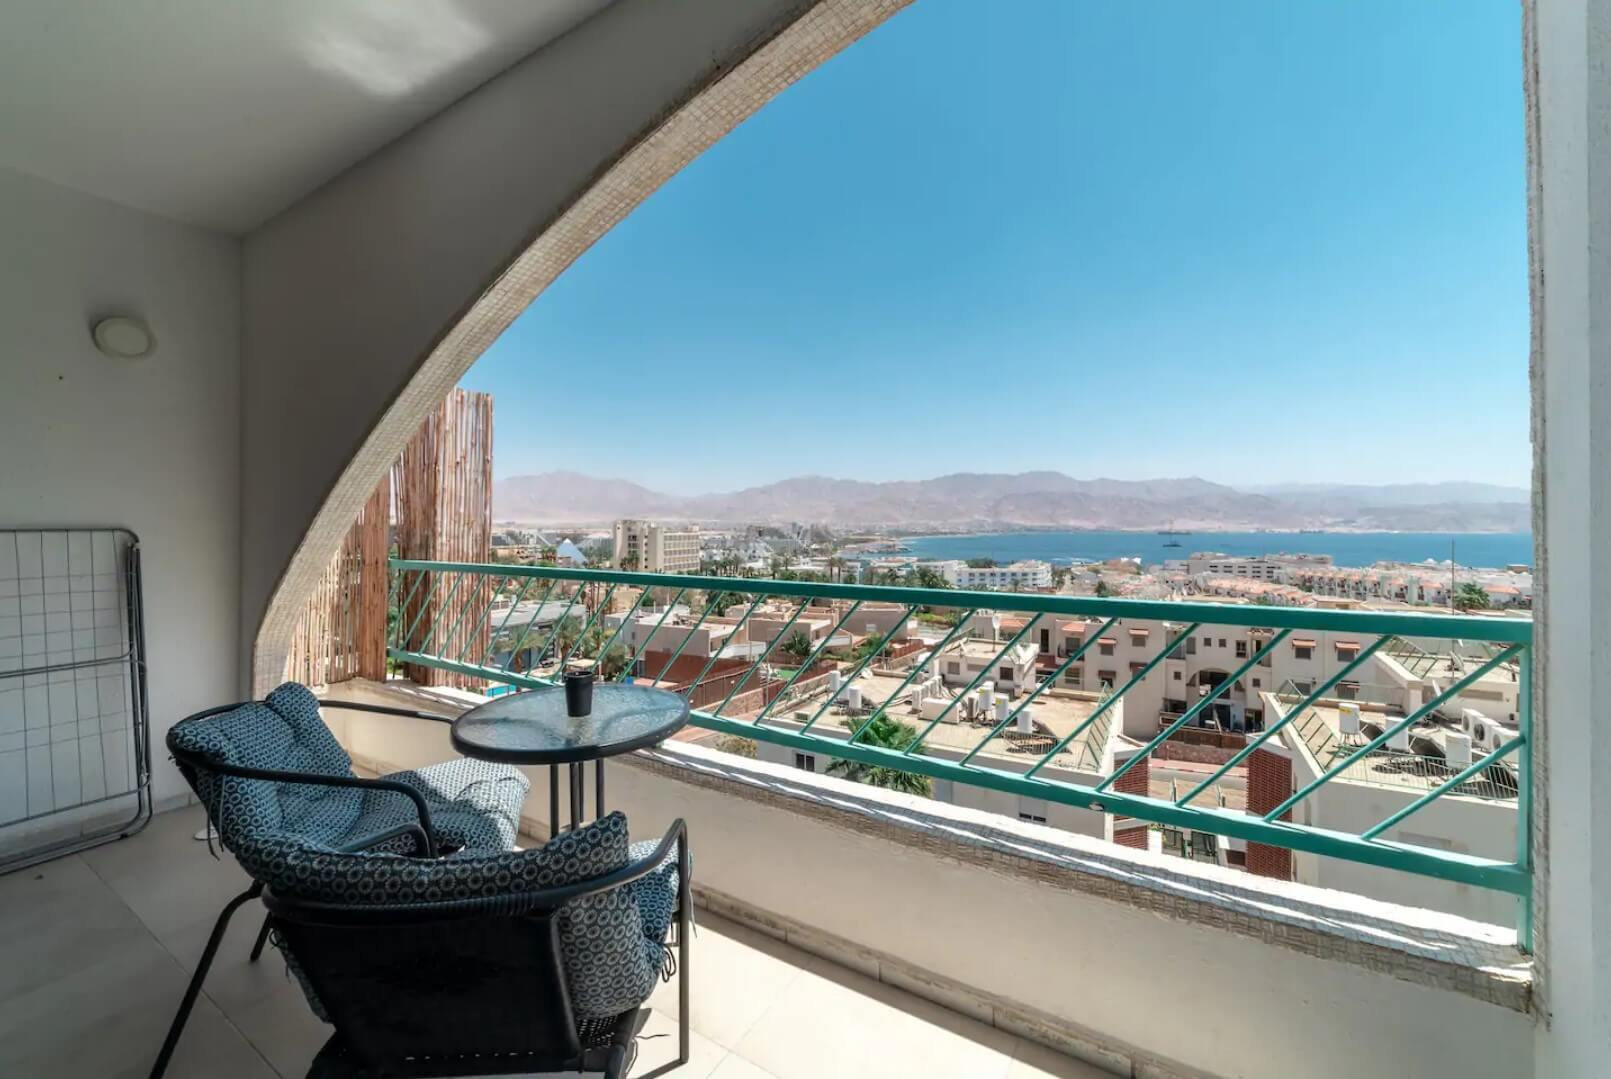 The Best Airbnb in Eilat: Red Sea View Apartment